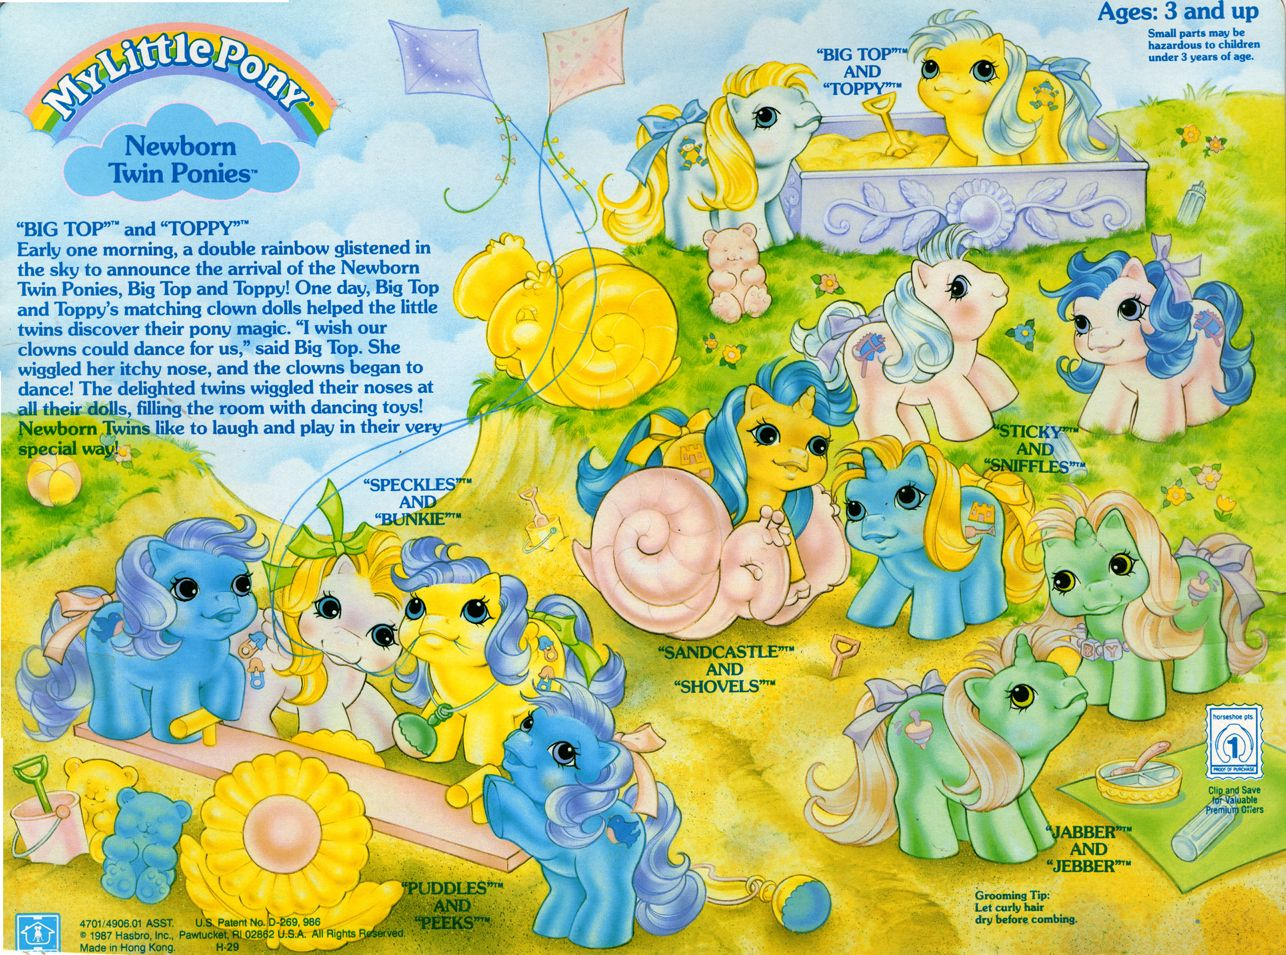 My Little Pony - Newborn Twins Year 2 Backcard - Big Top and Toppy